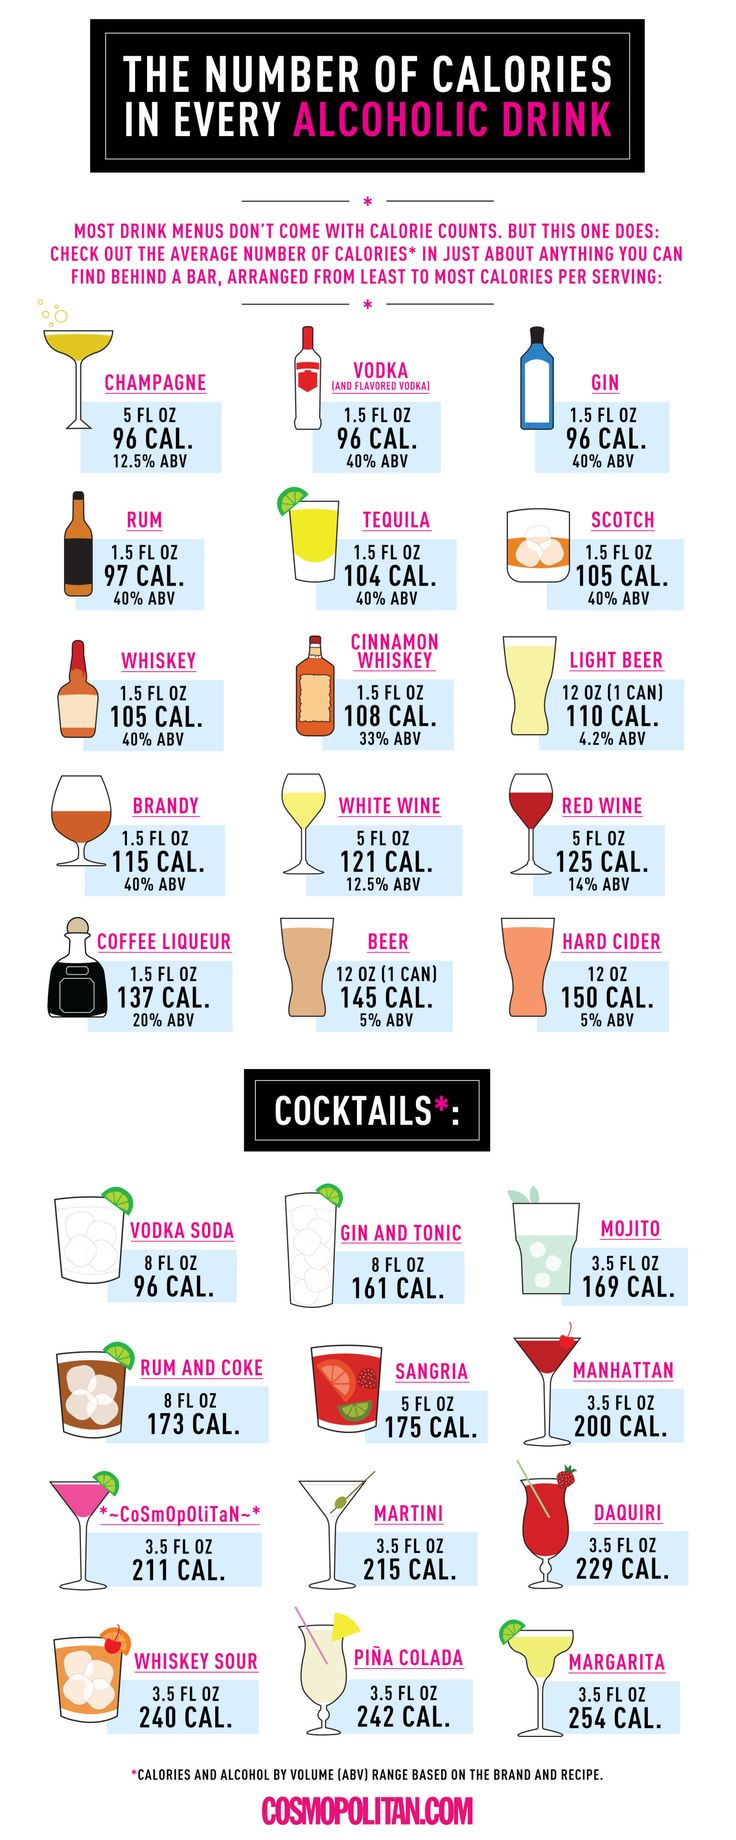 See the Calorie Information Every Alcoholic Beverage Is Missing in One Handy Chart  - Cosmopolitan.com